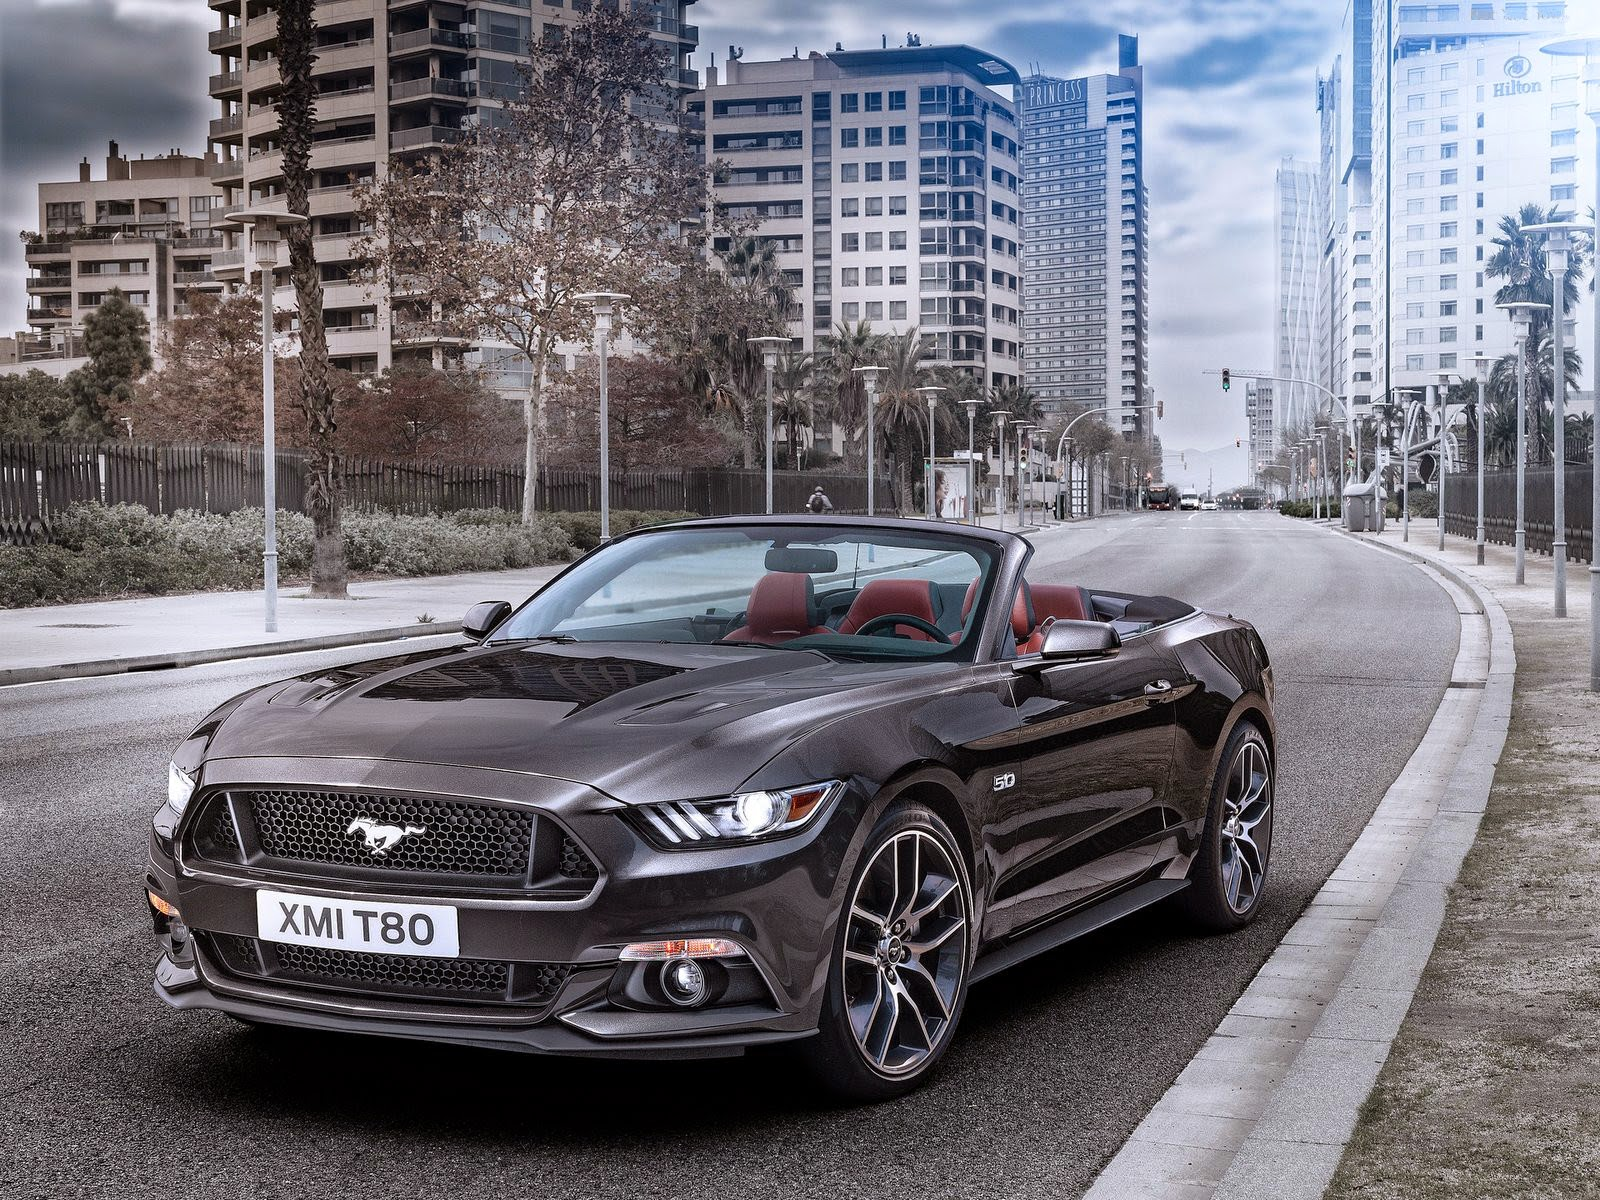 ford mustang convertible wallpaper free hd wallpapers. Black Bedroom Furniture Sets. Home Design Ideas